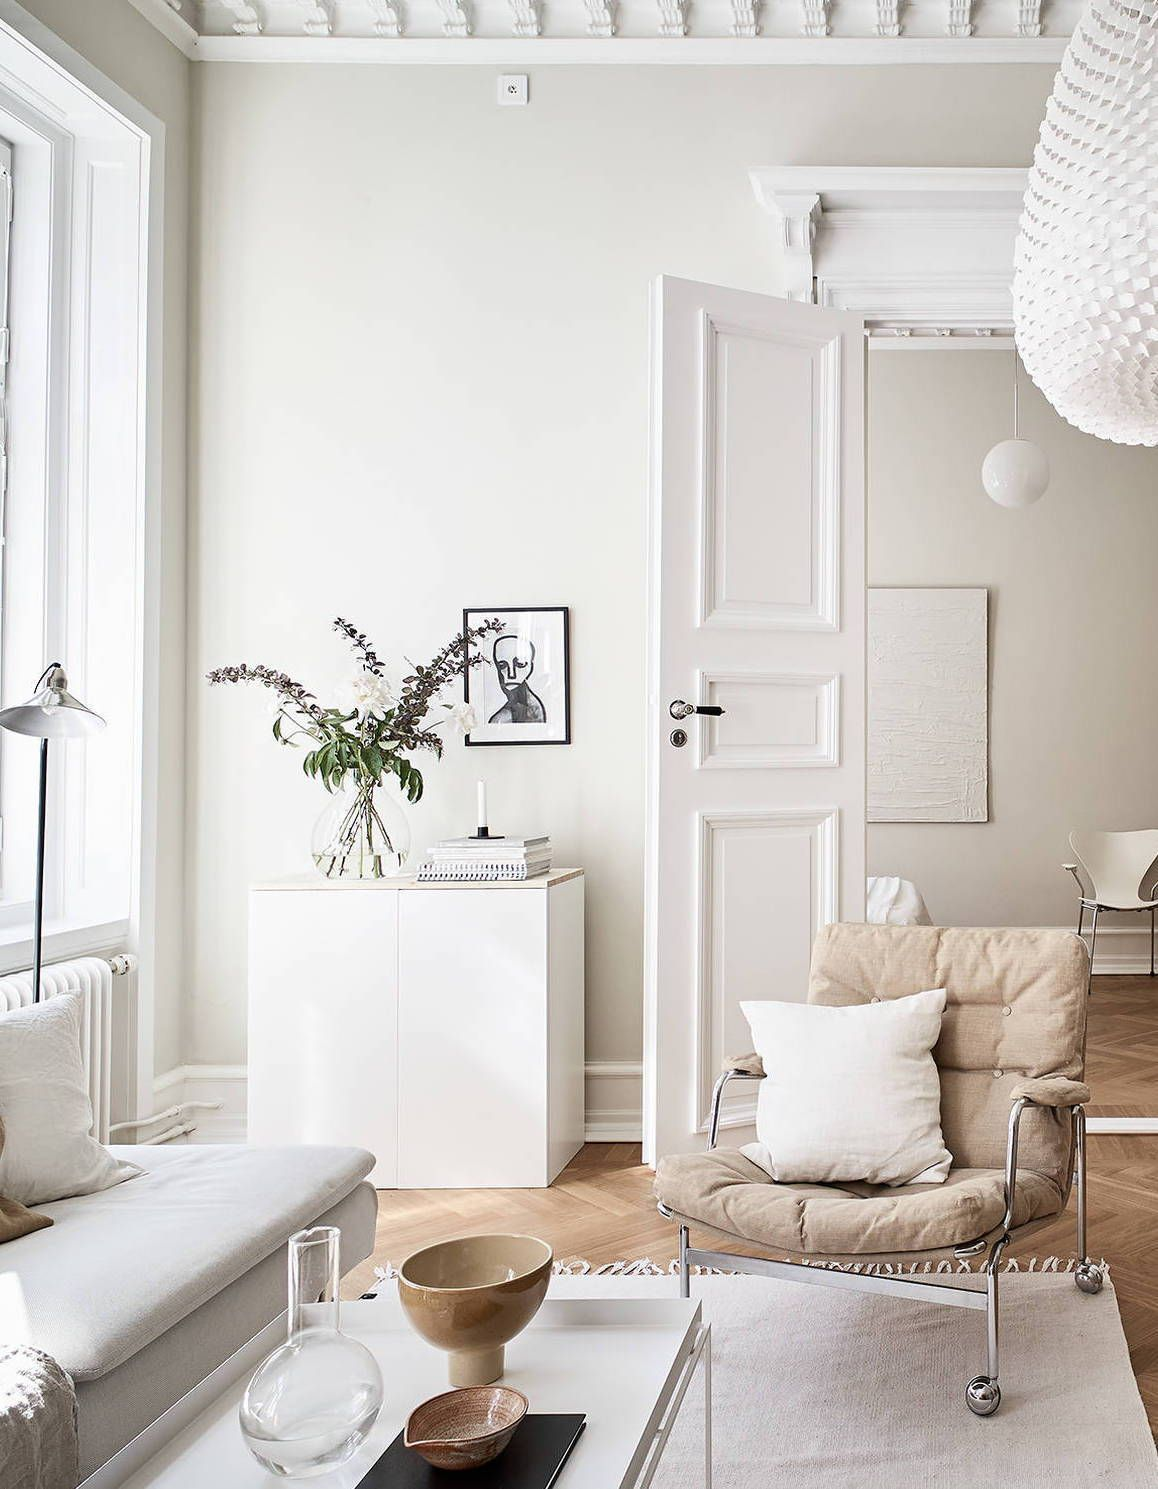 Photo of Turn of the century home in beige – COCO LAPINE DESIGN